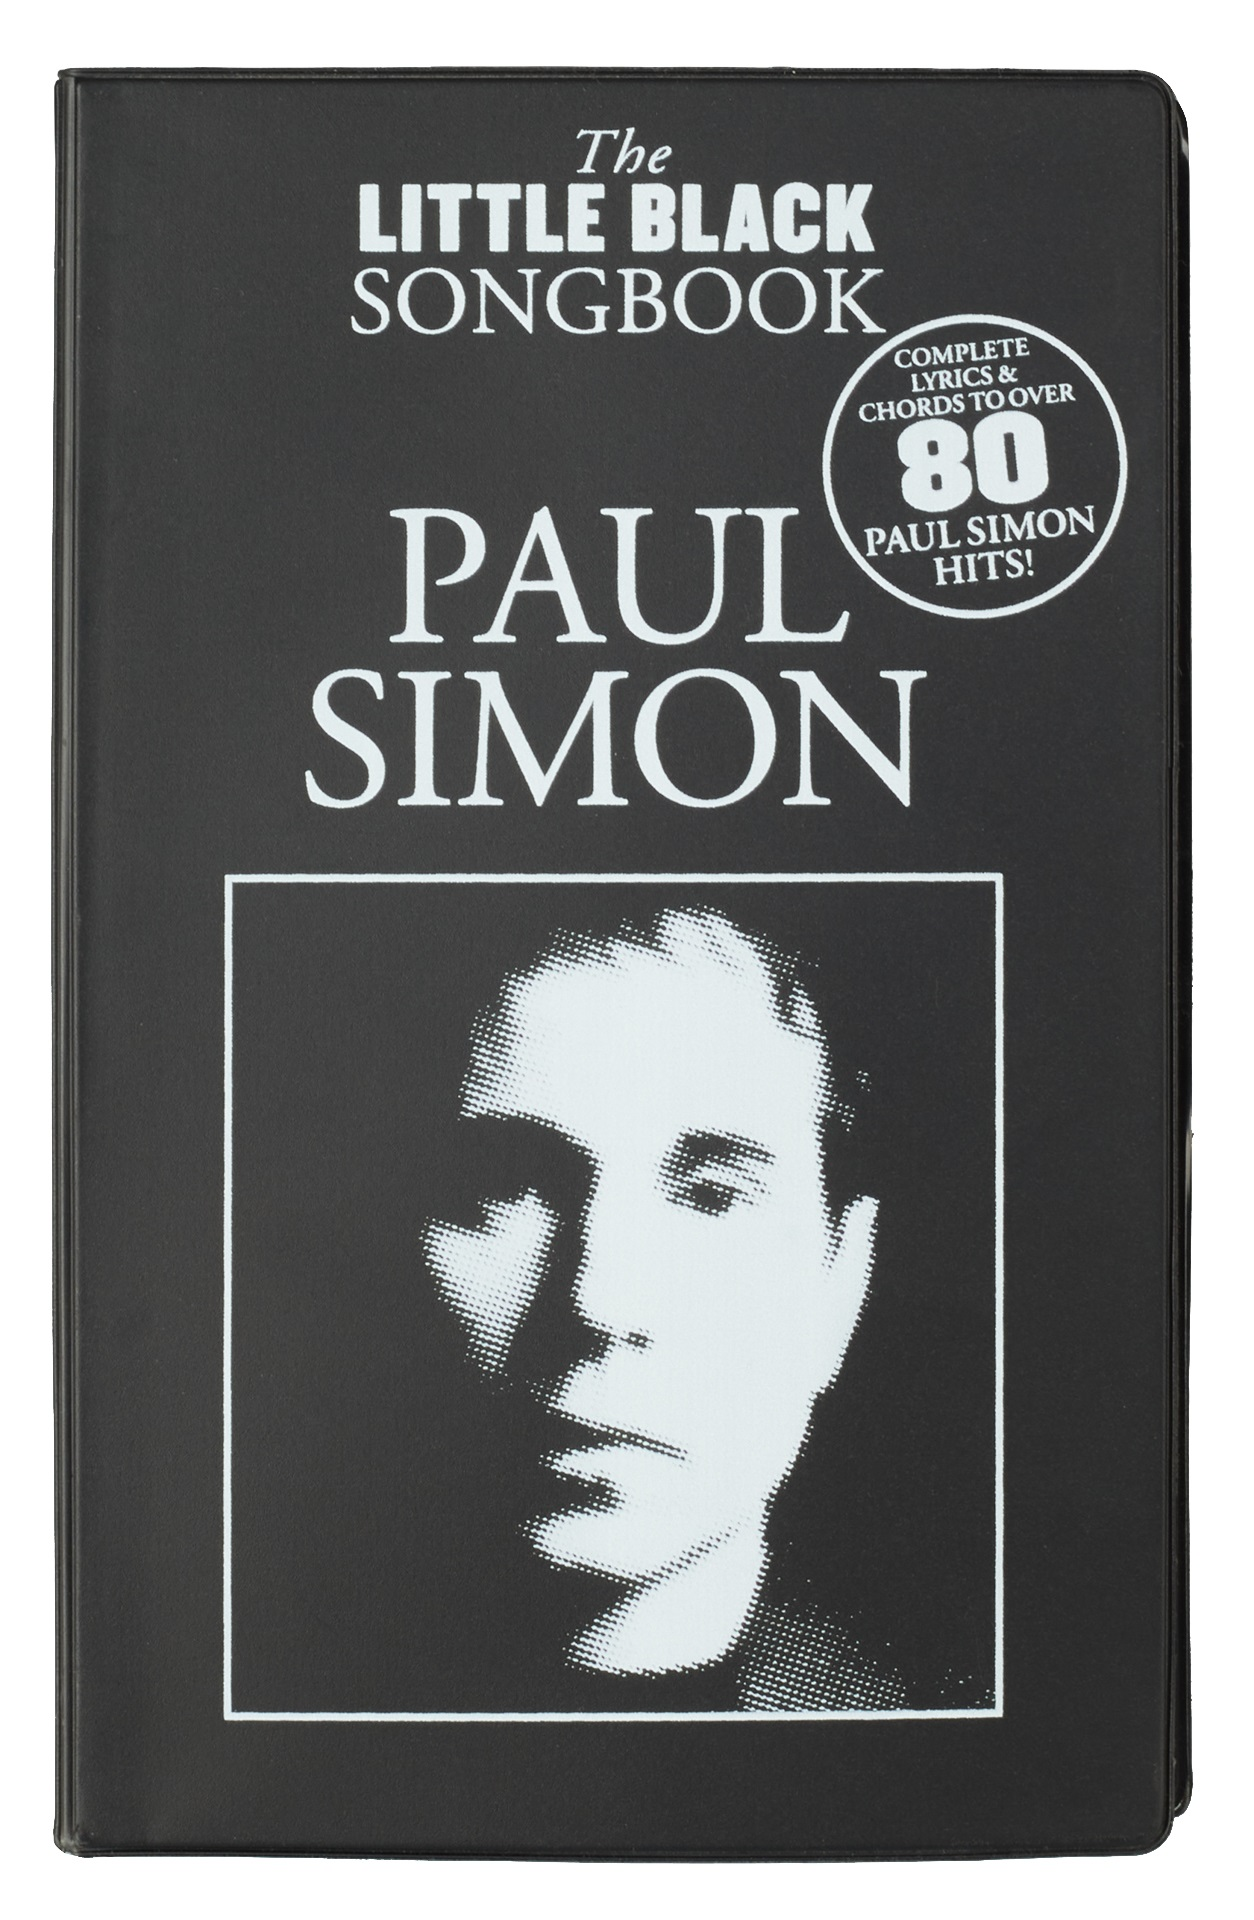 MS The Little Black Songbook: Paul Simon